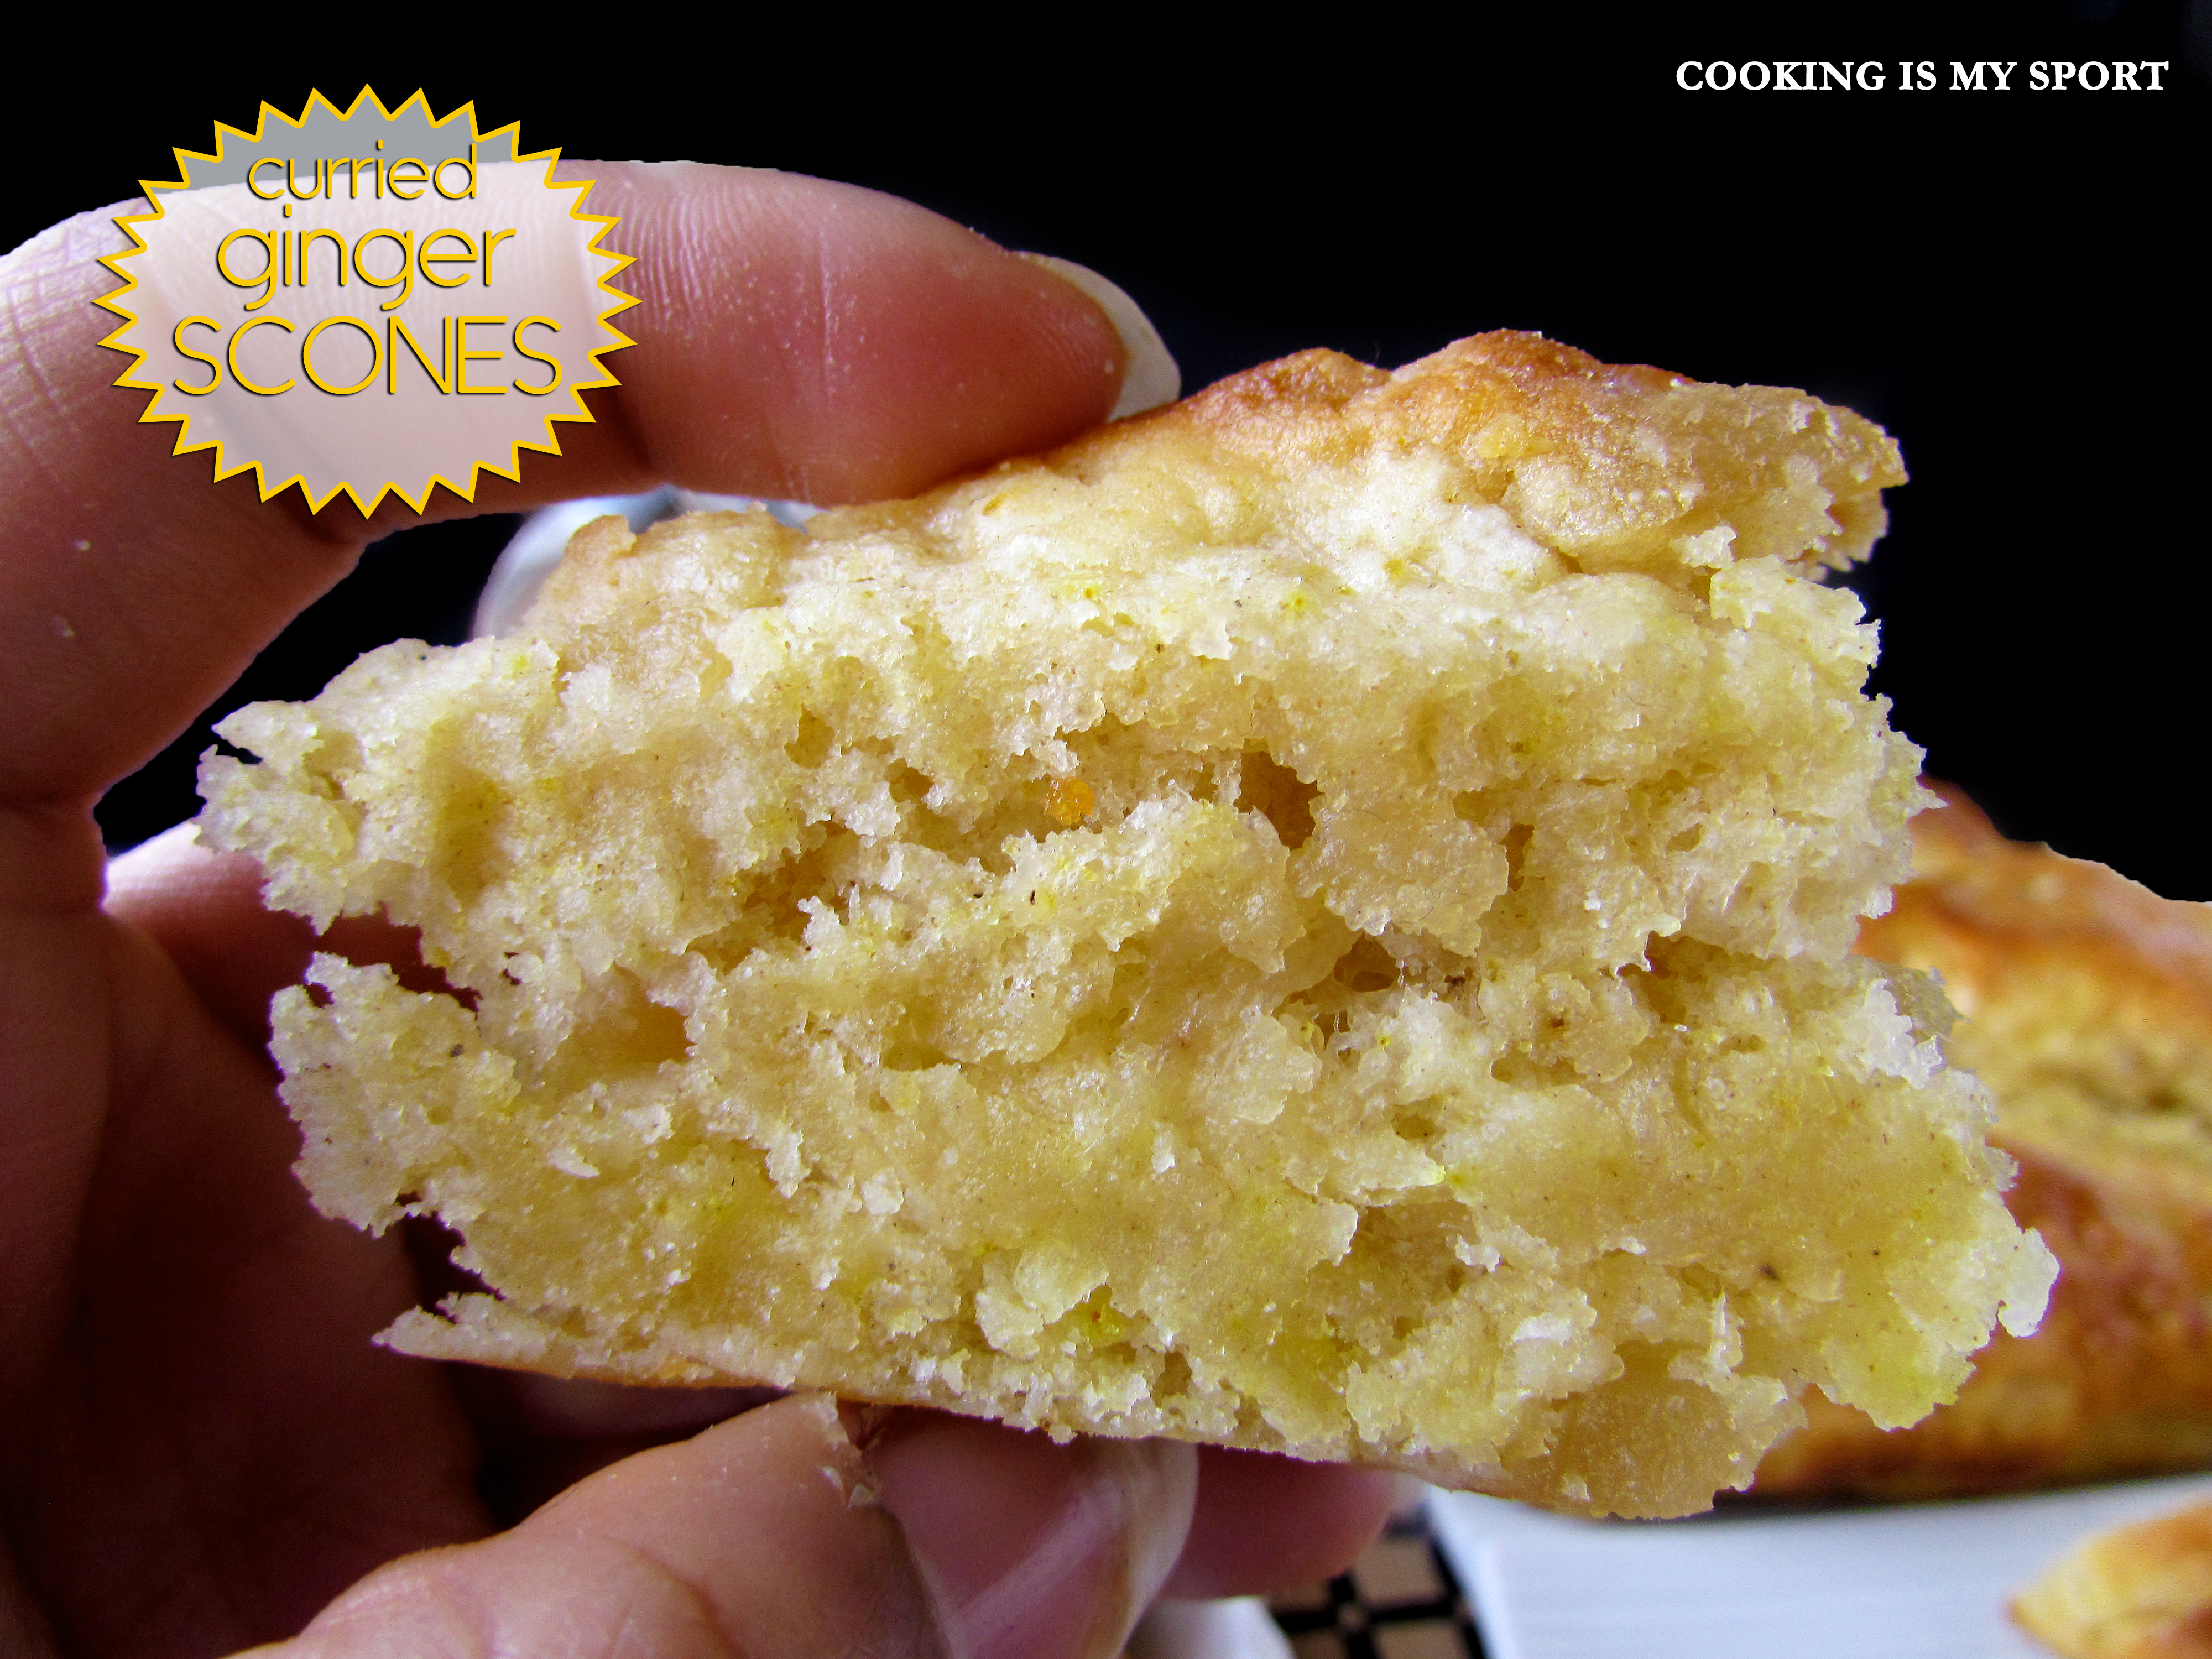 Curried Ginger Scones6